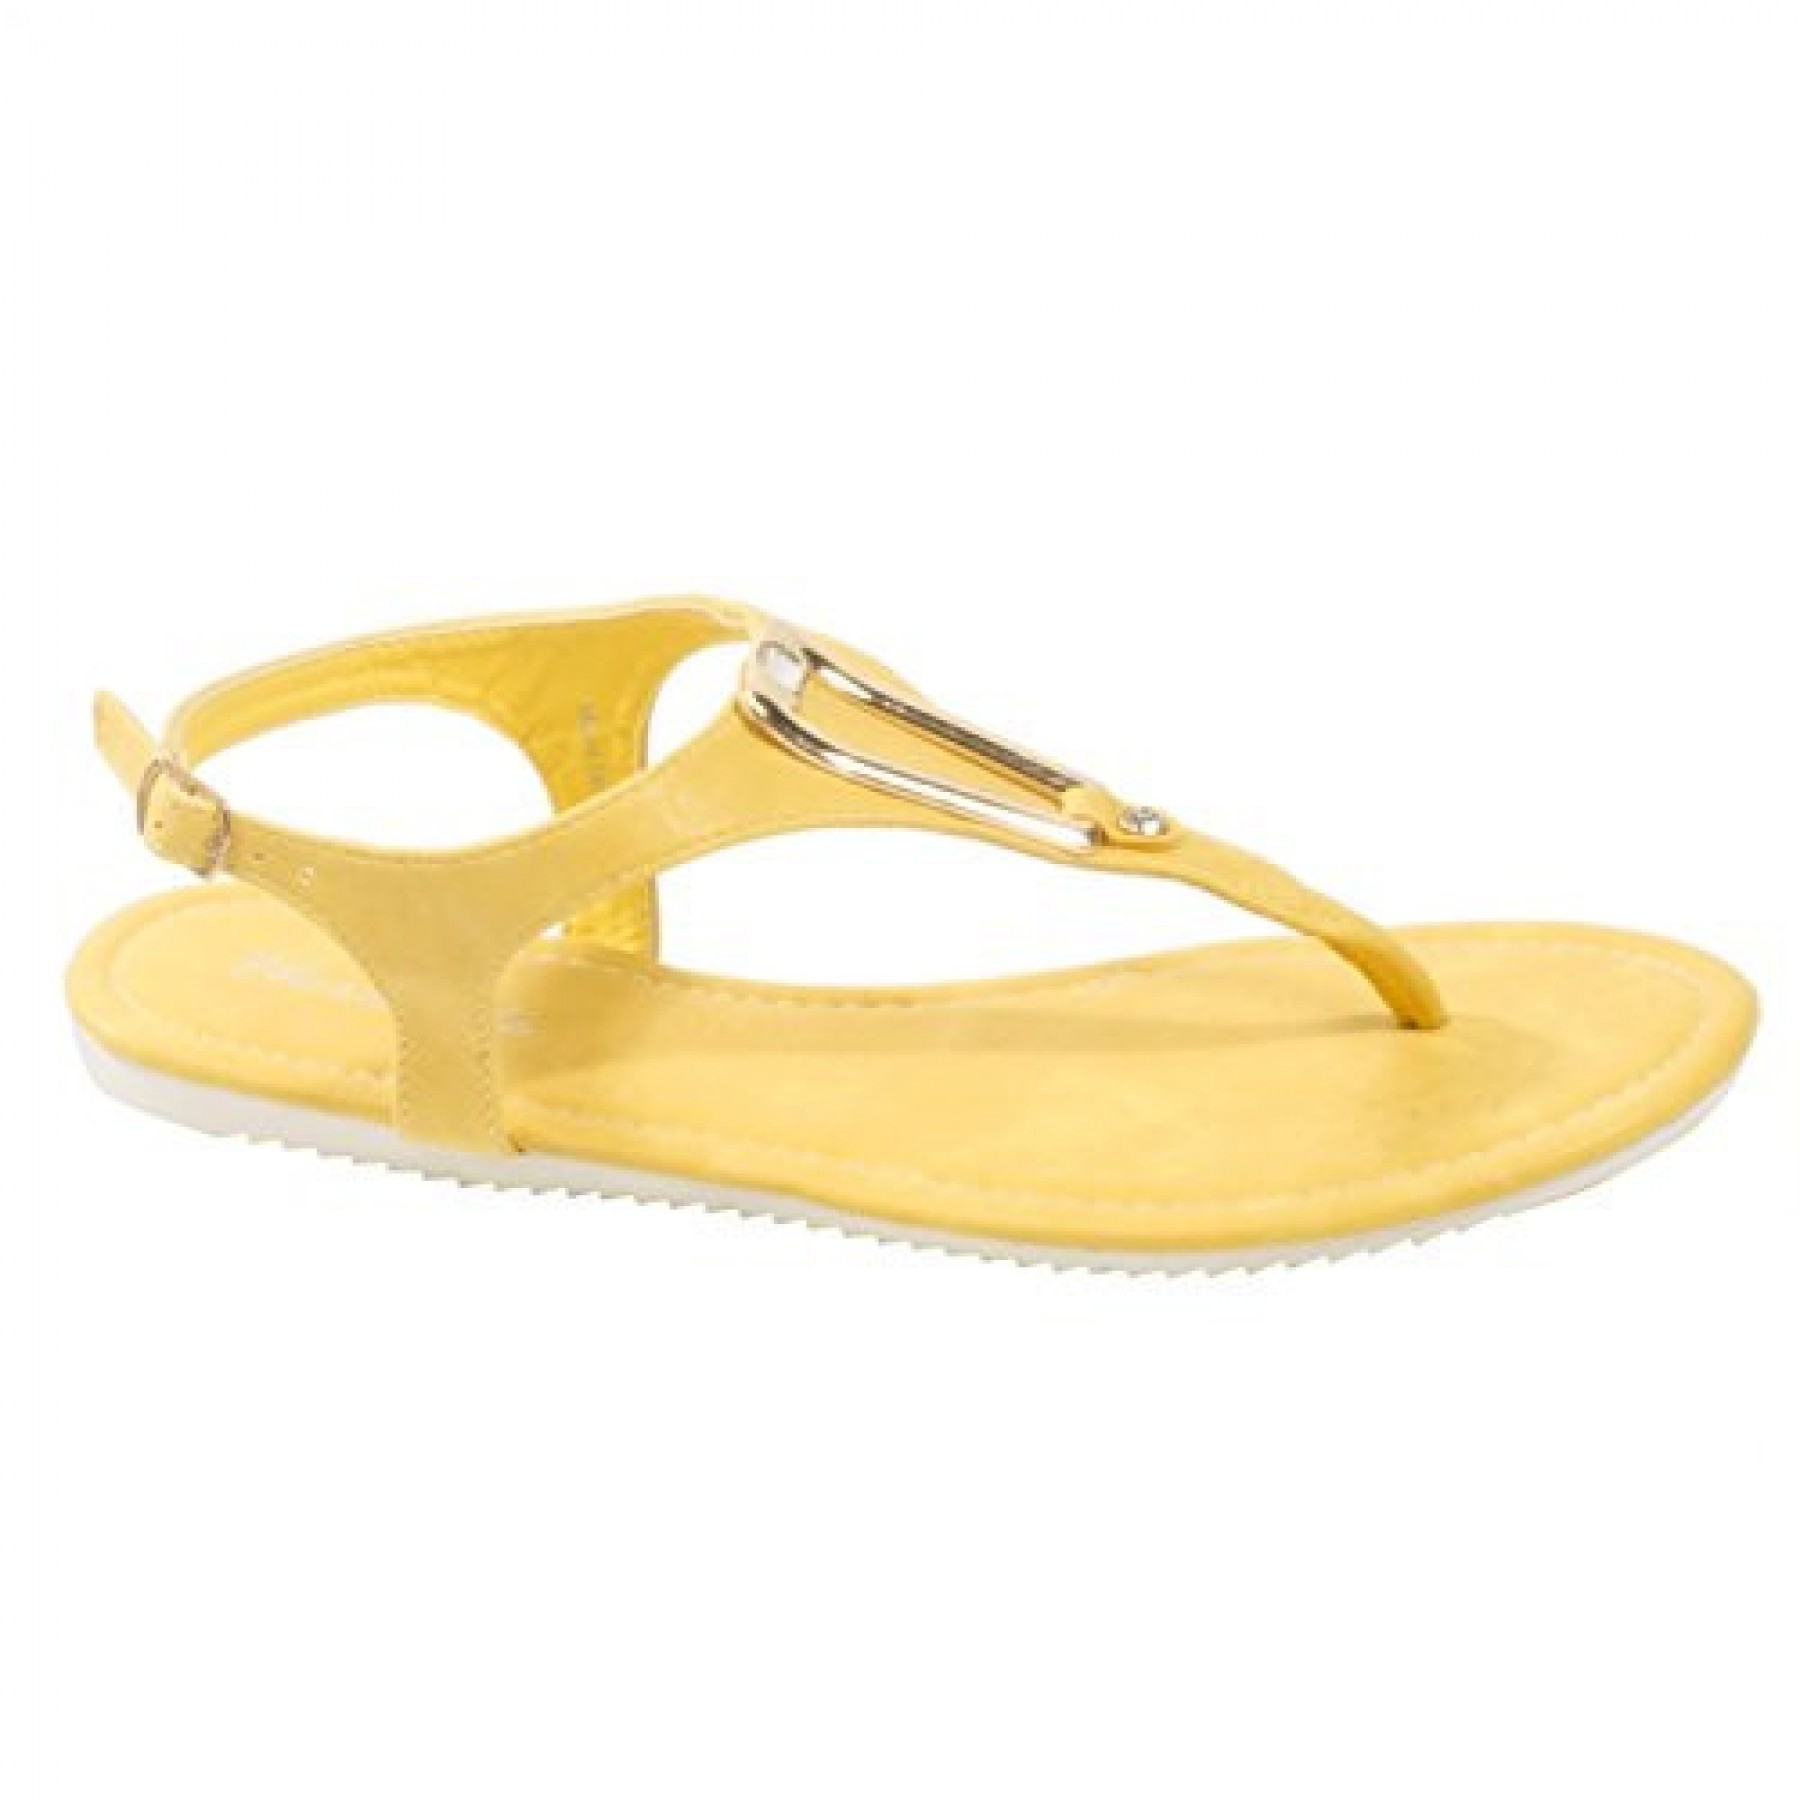 Women's Yellow Manmade Monttank T-Strap Sandal with Gold-Tone Adornment